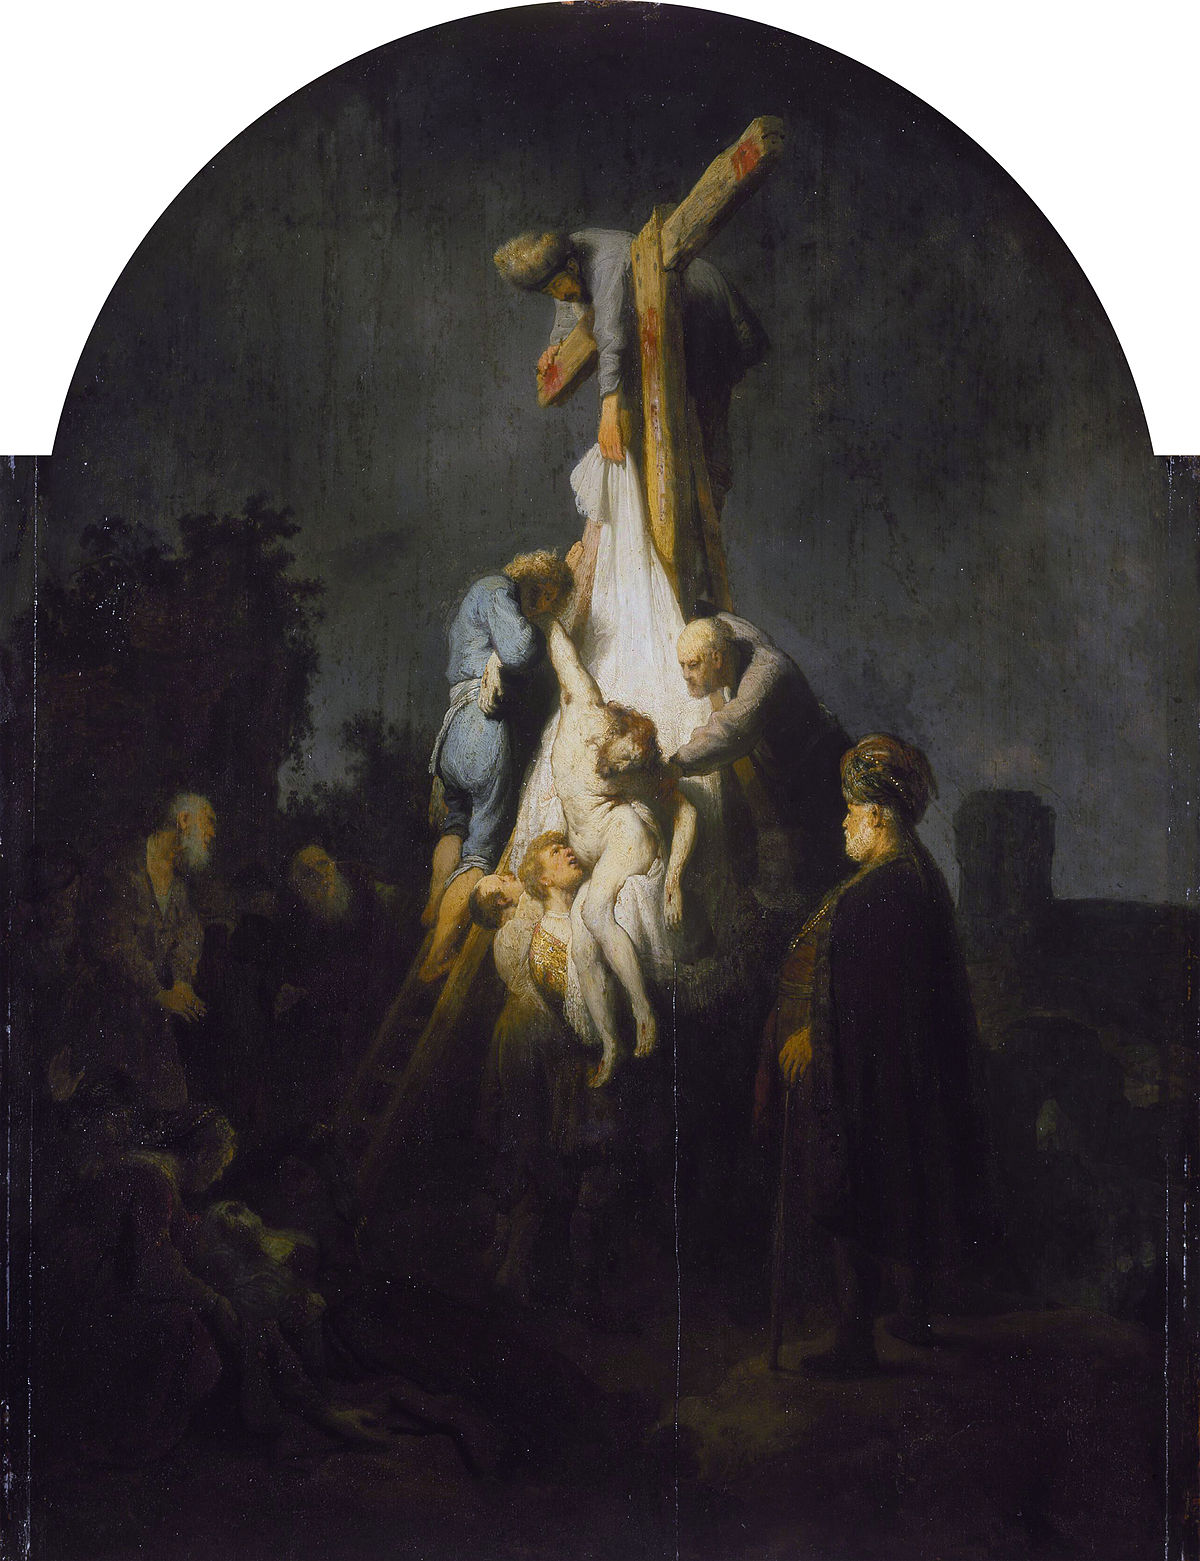 The Descent from the Cross (Rembrandt, 1633) - Wikipedia